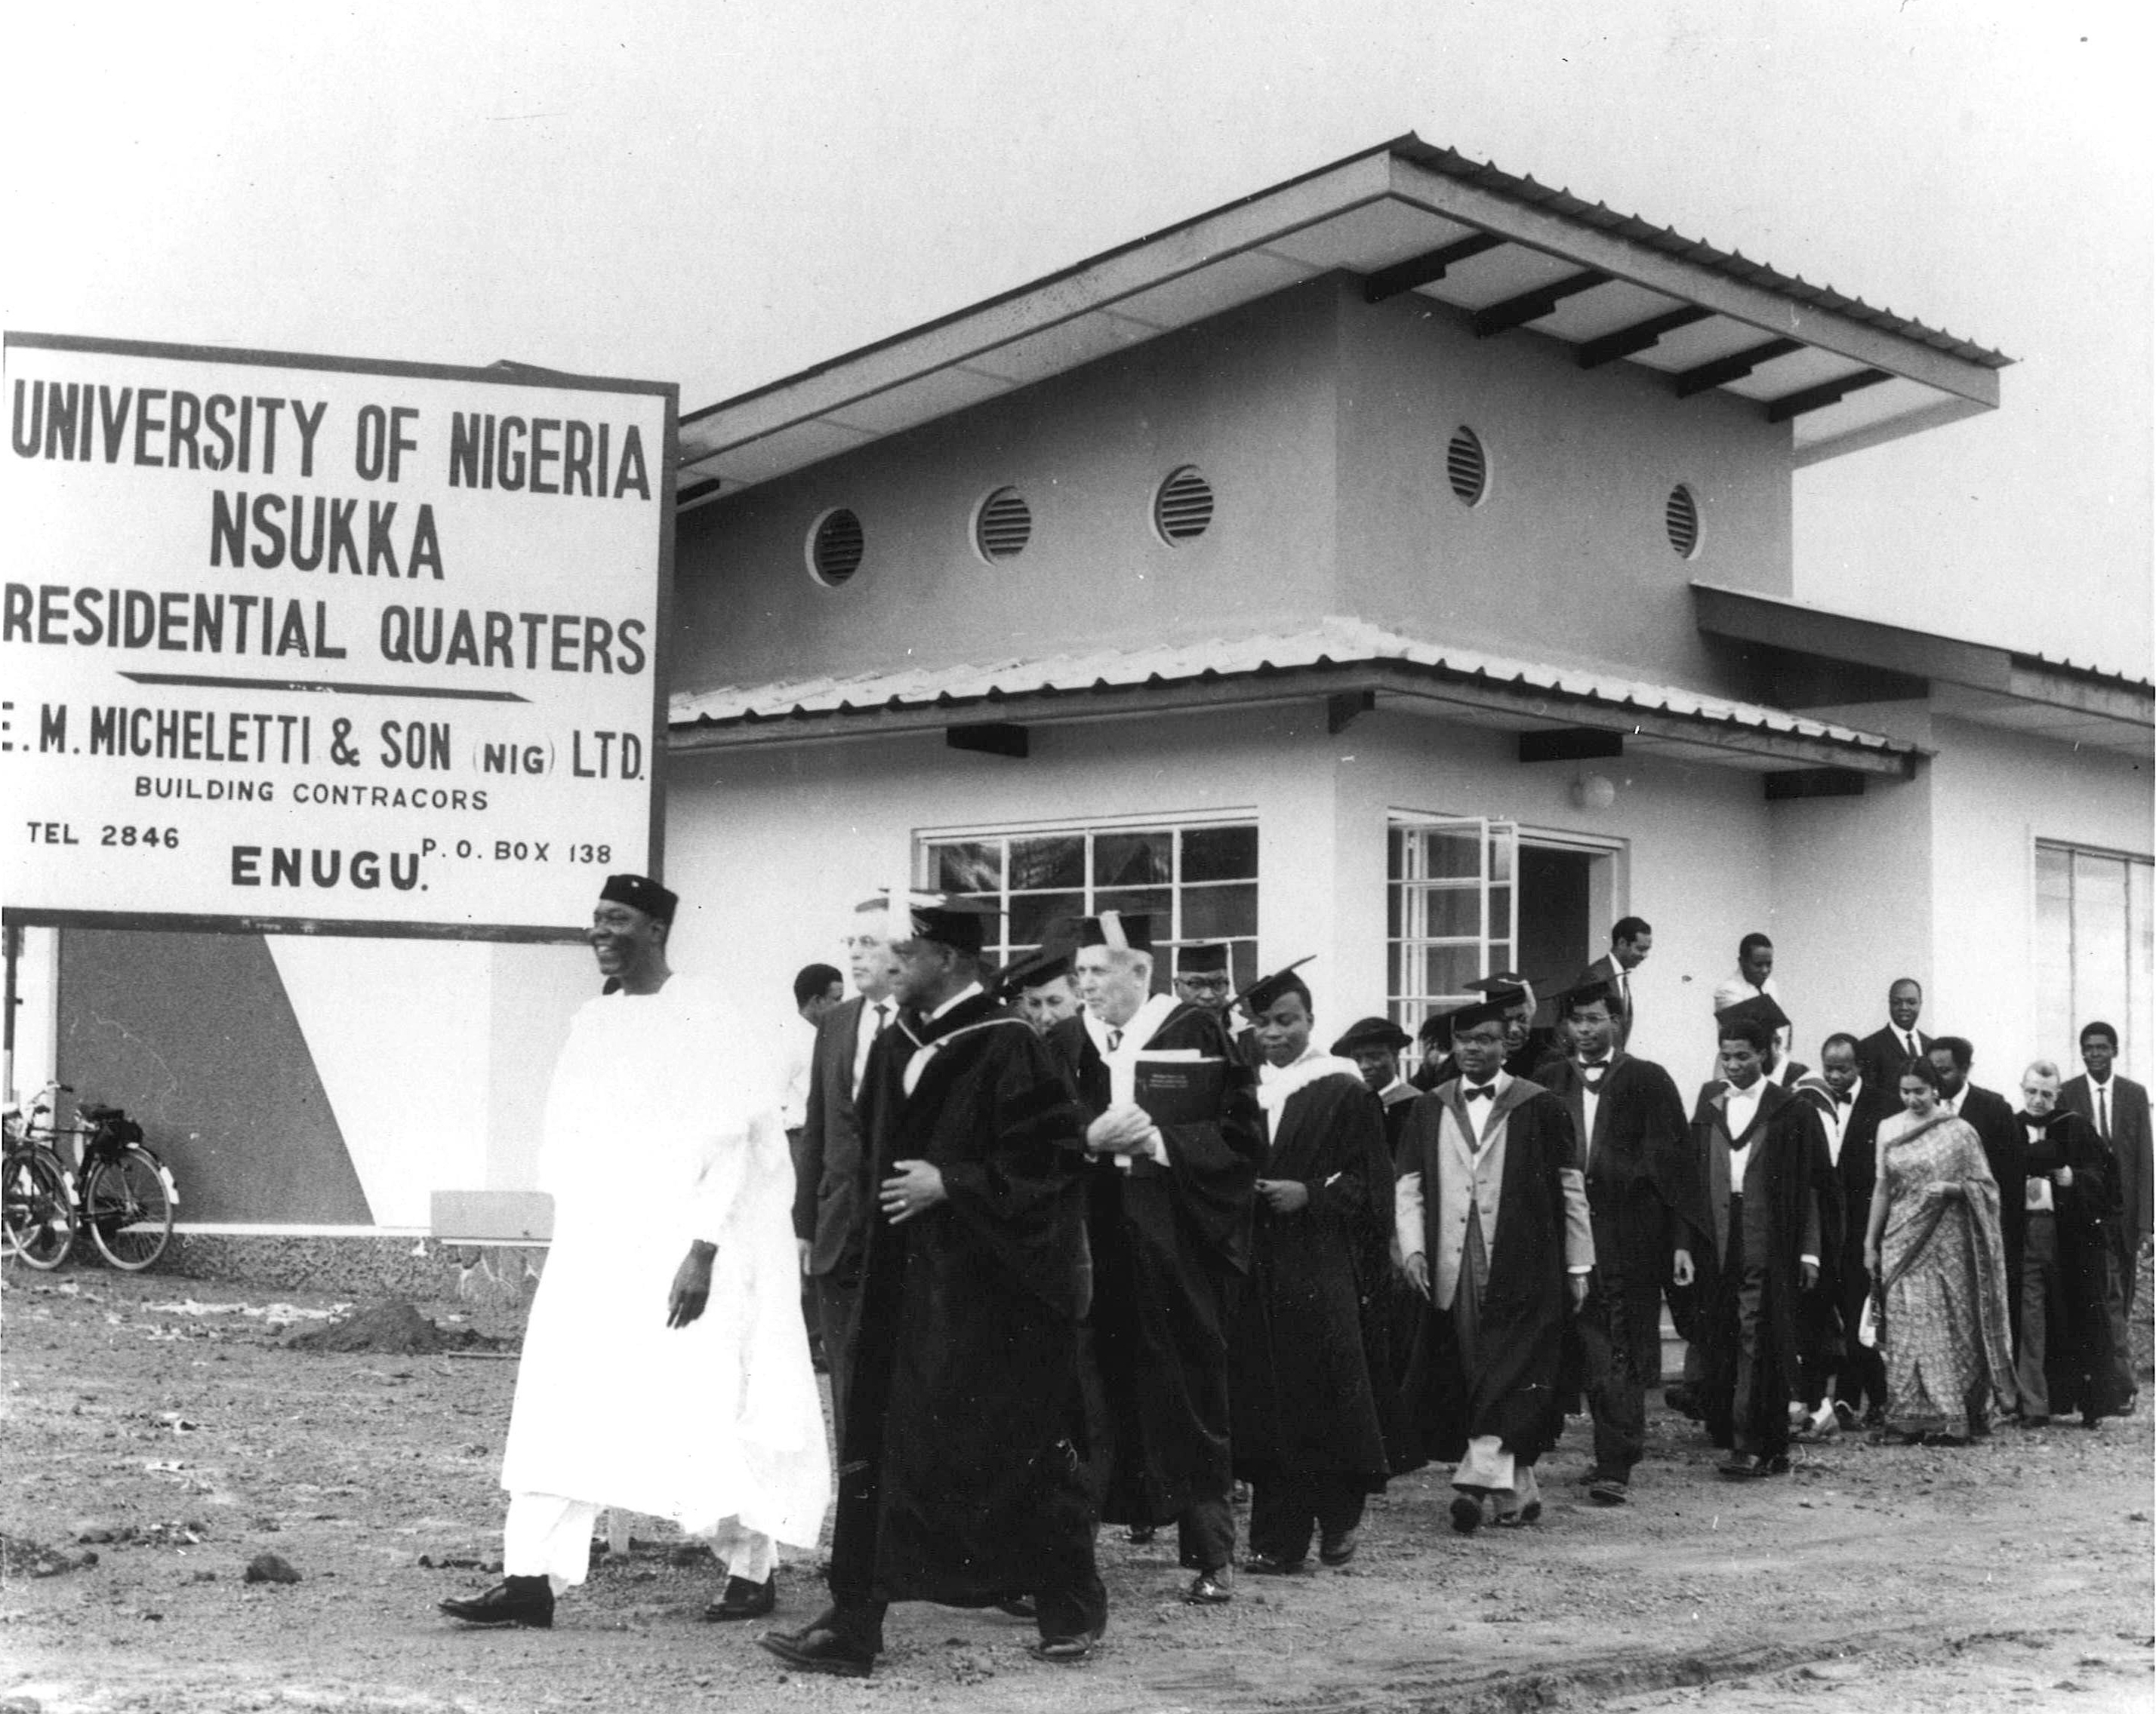 A black and white photograph taken at University of Nigeria, Nsukka. There are over a dozen men walking in academic robes in a procession outside a building.